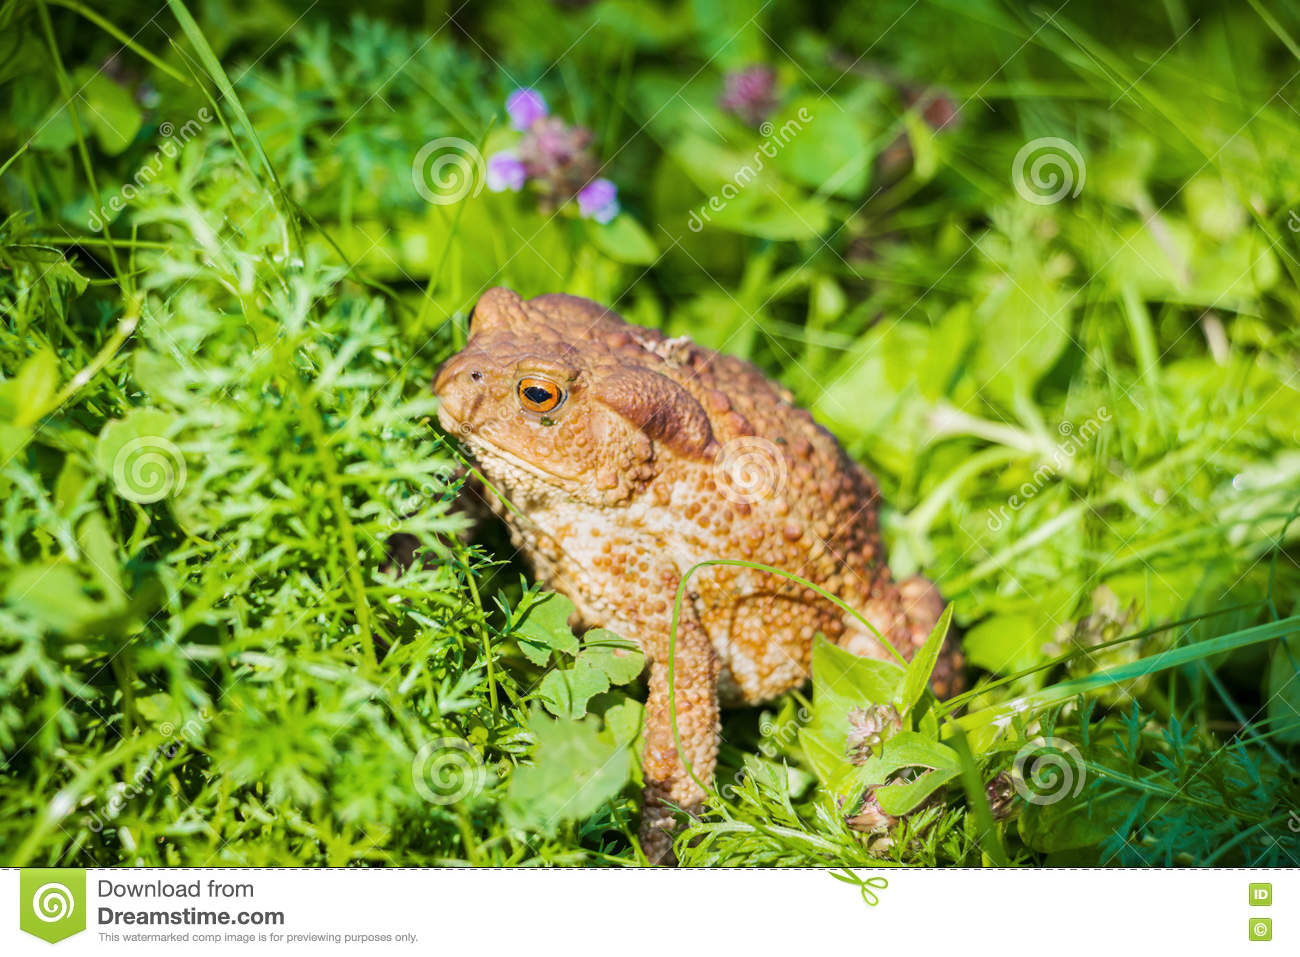 Huge Brown Toad With Mottled Skin Sits In Grass In Garden Stock